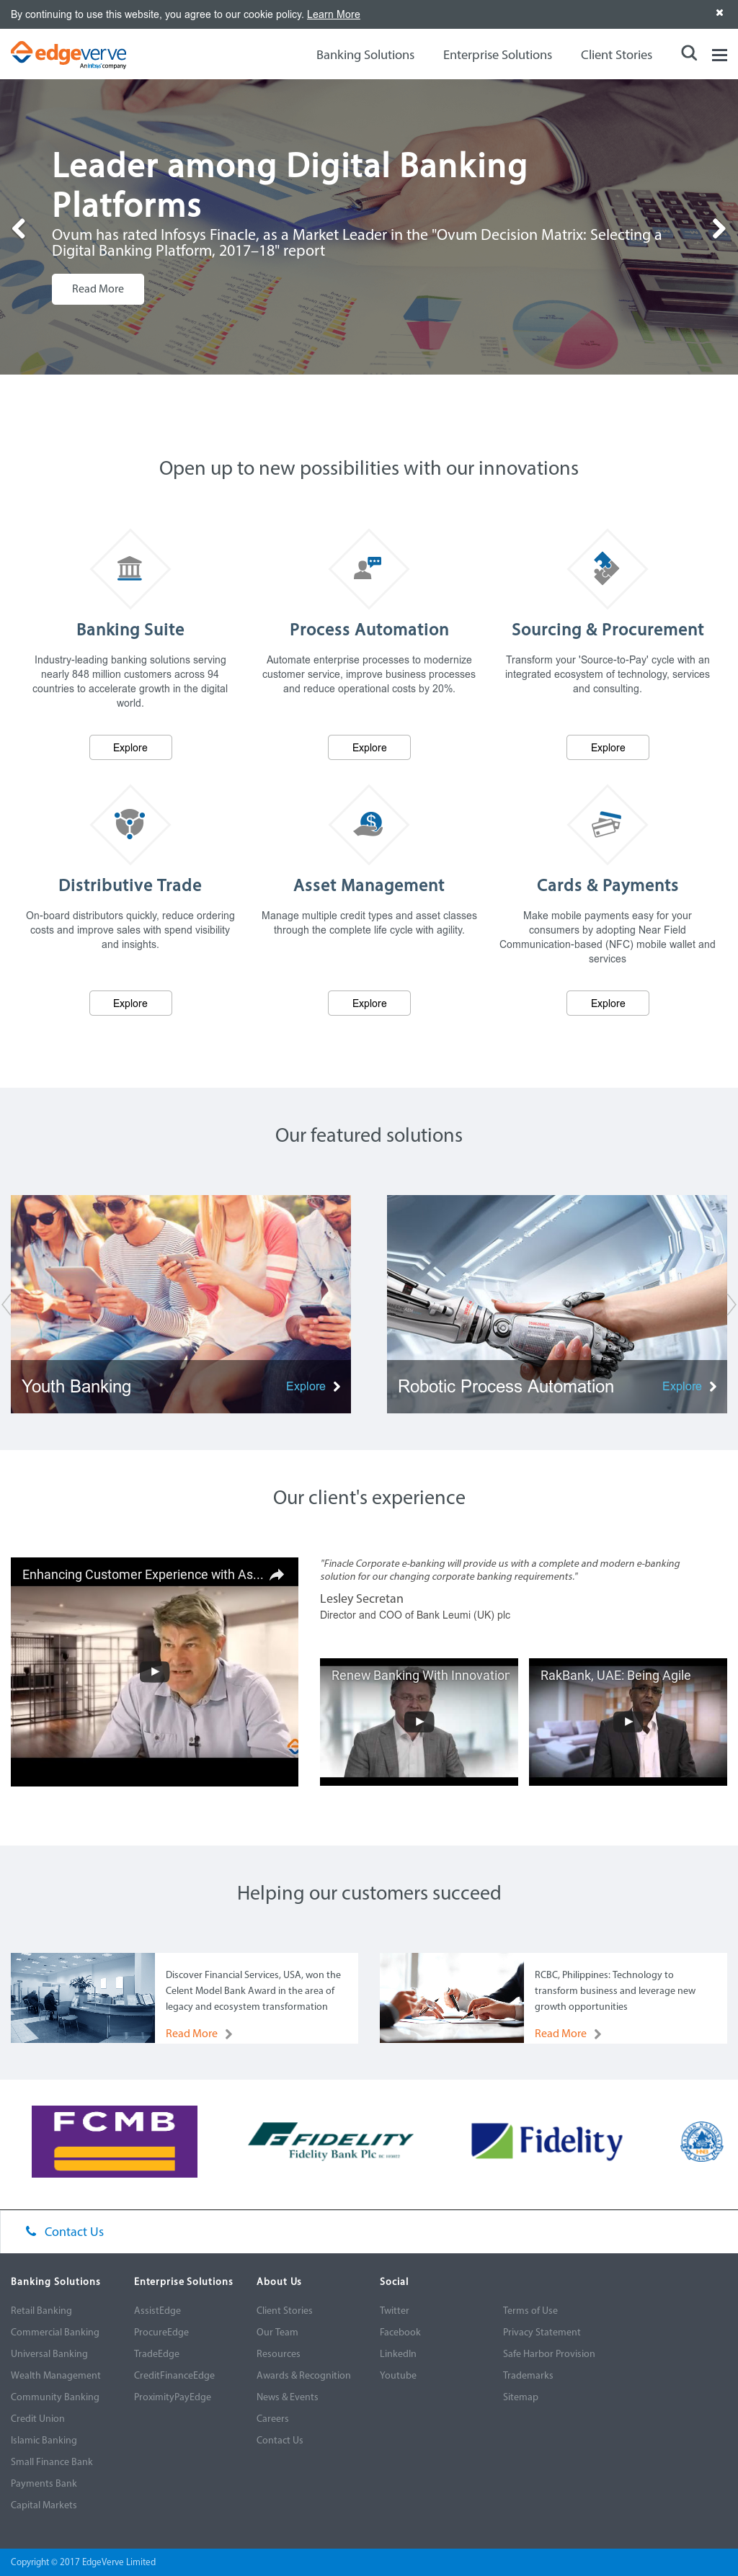 EdgeVerve Competitors, Revenue and Employees - Owler Company